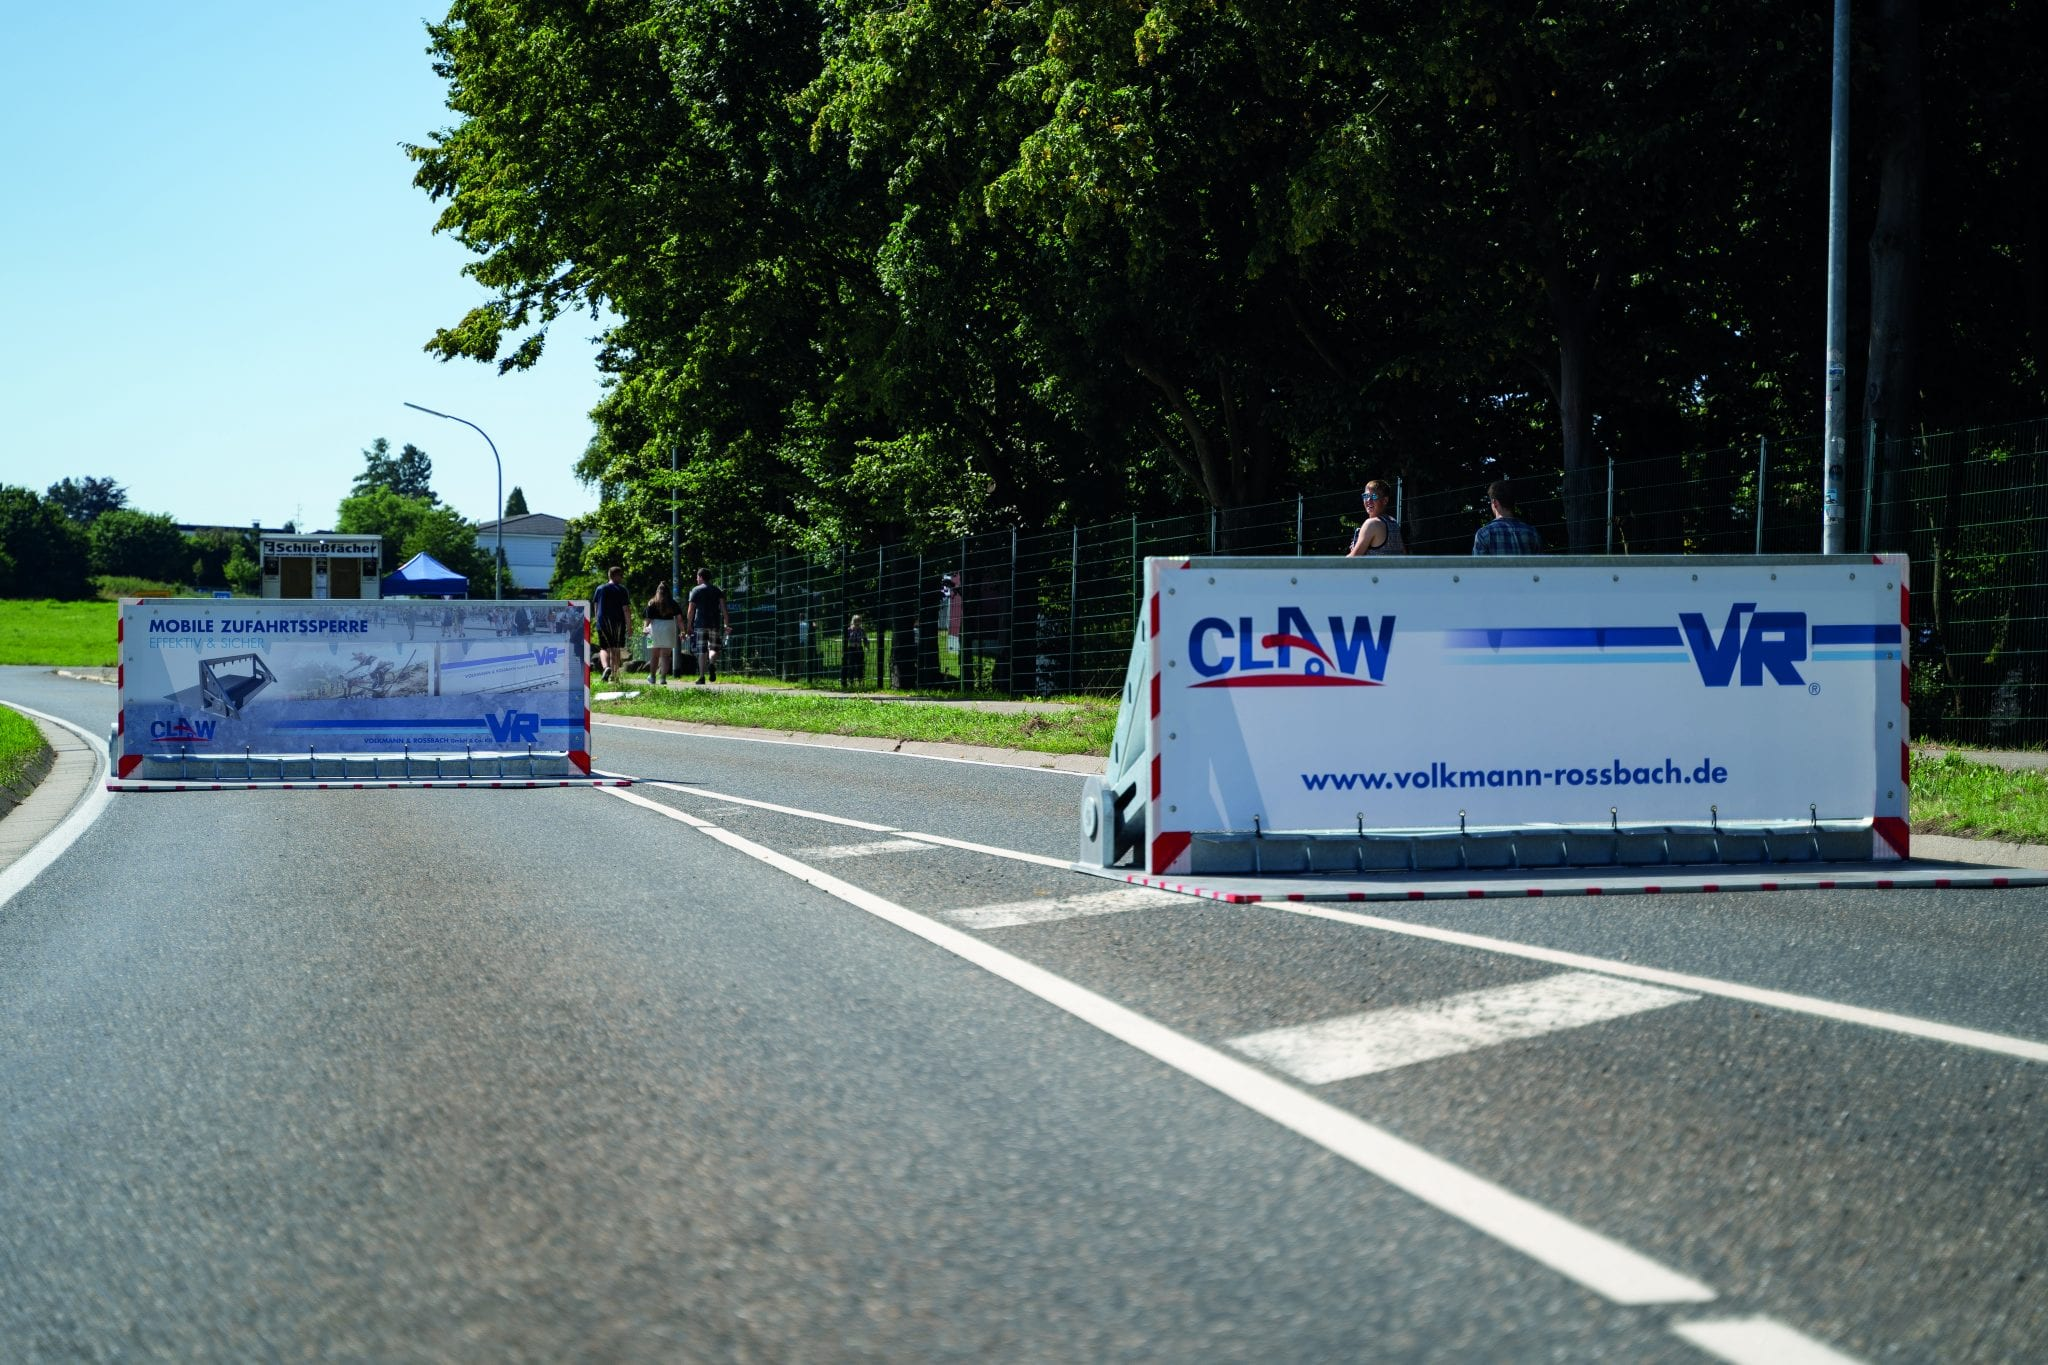 claw vehicle hostile barrier